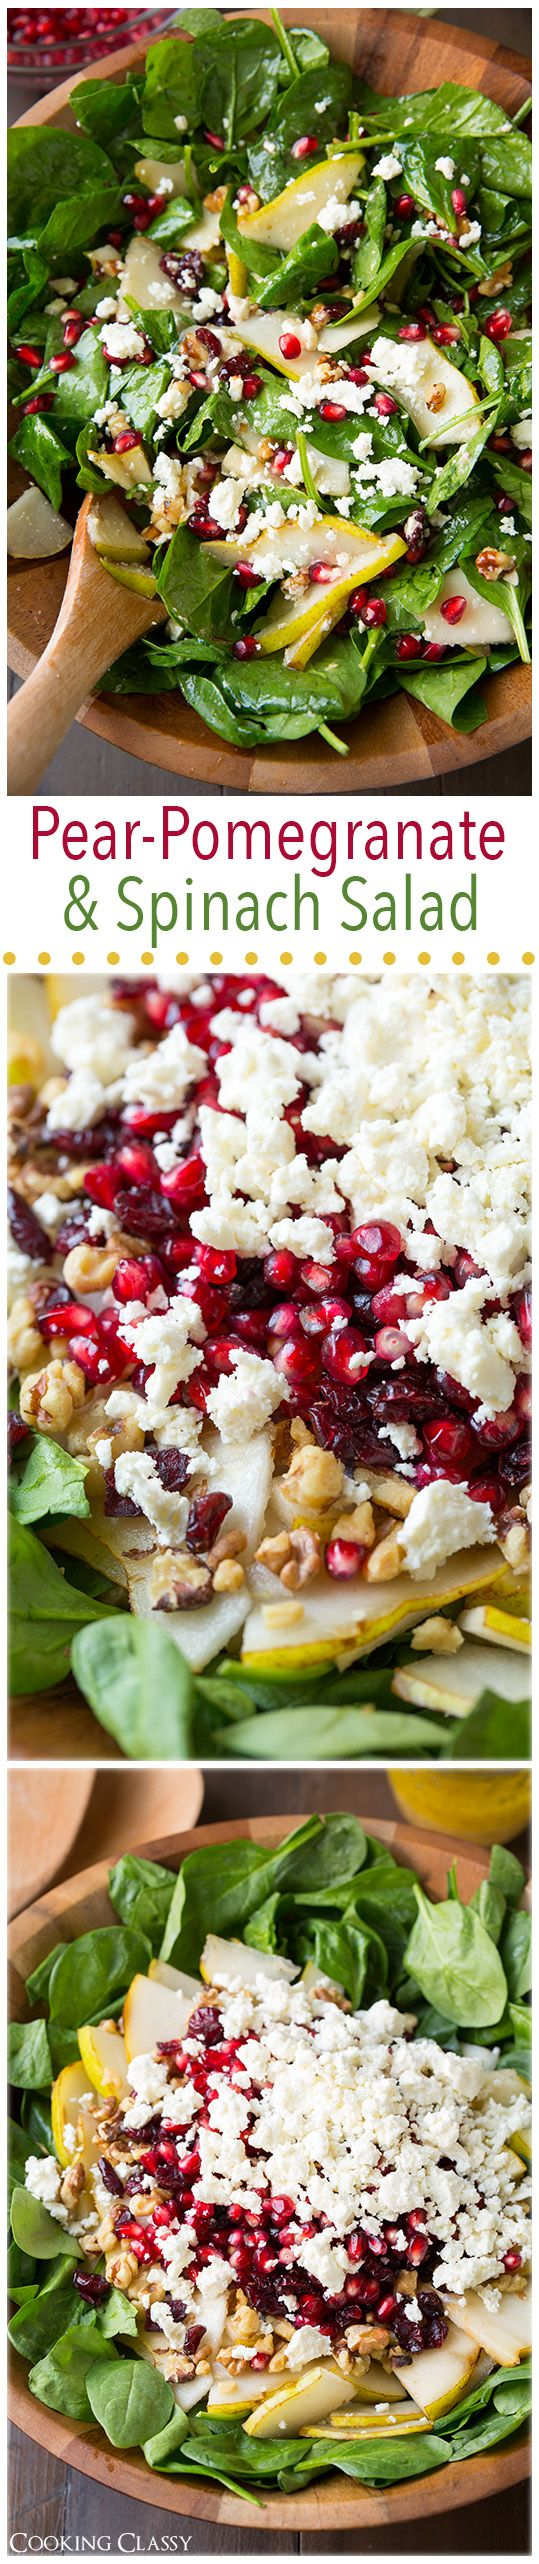 Pear Pomegranate and Spinach Salad with Feta and Vinaigrette - This salad is so delicious and so festive! Perfect for the holidays.